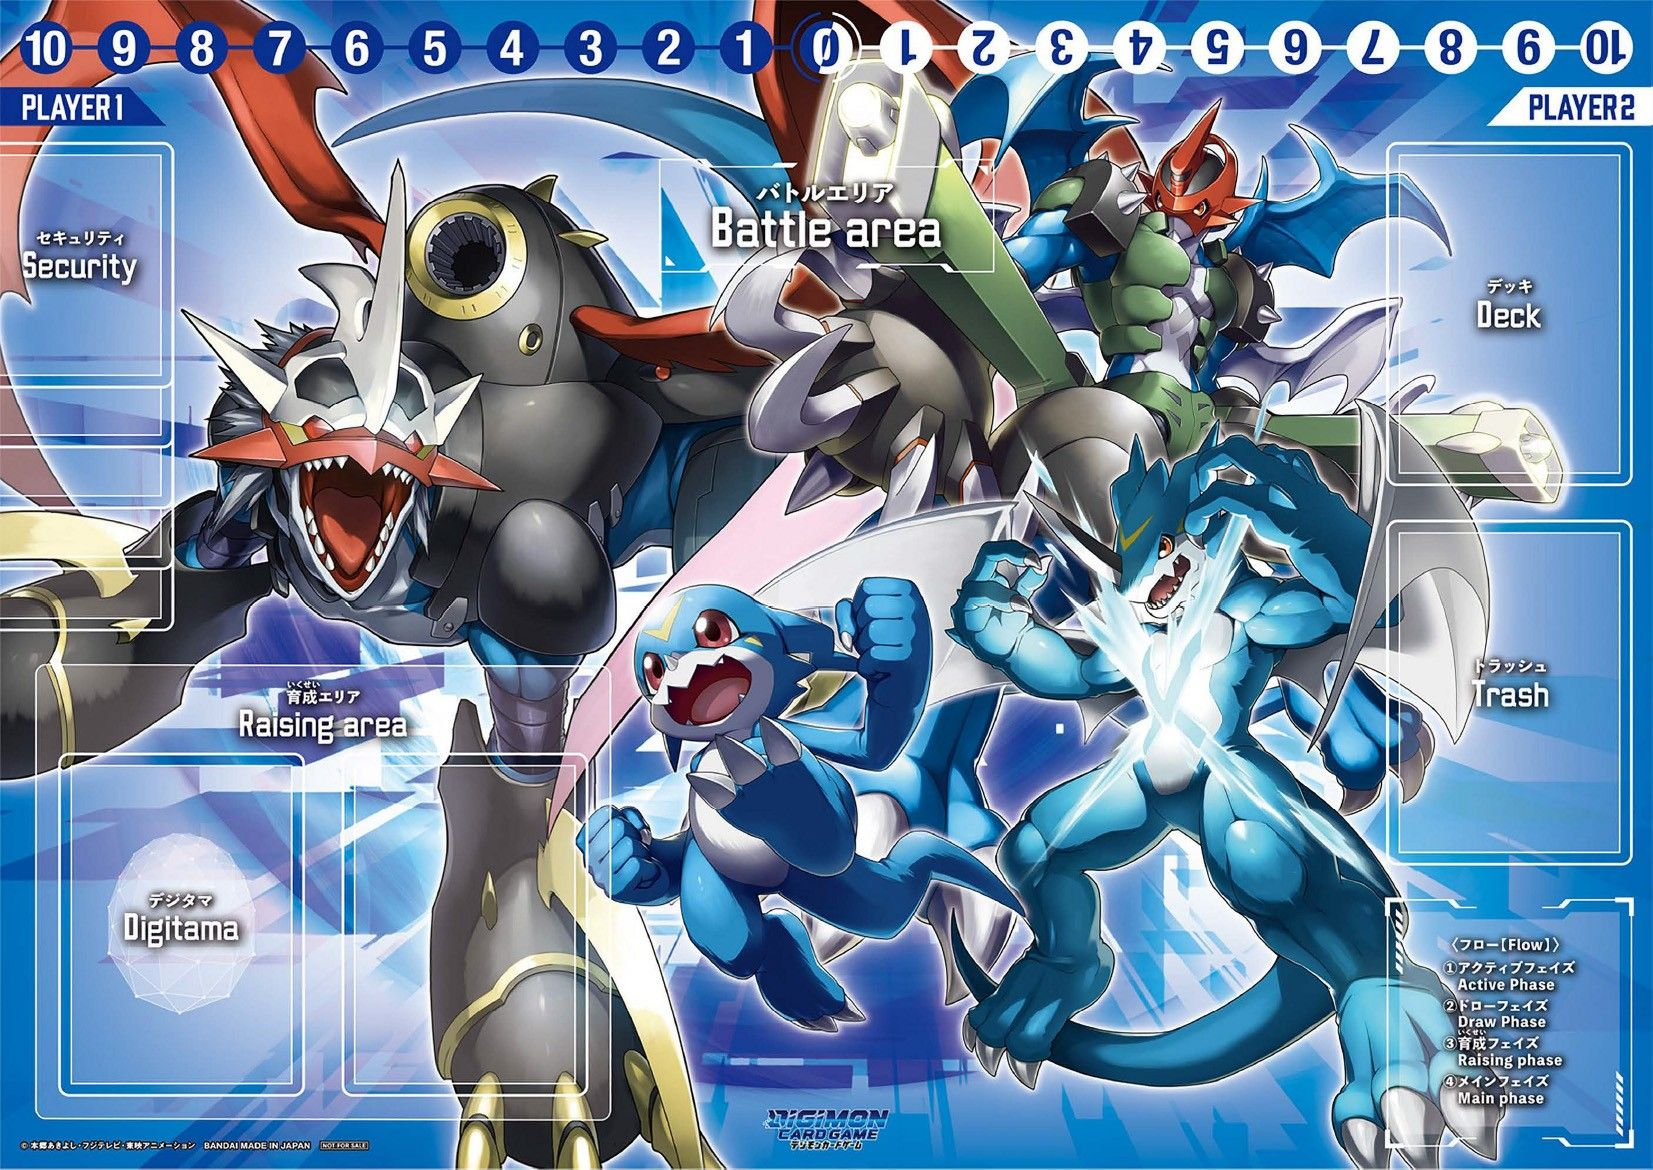 Pin By Francisco Angel On Digimon Pokemon In 2020 Digimon Anime Pokemon By default the game is censored (see remove censorship). pinterest